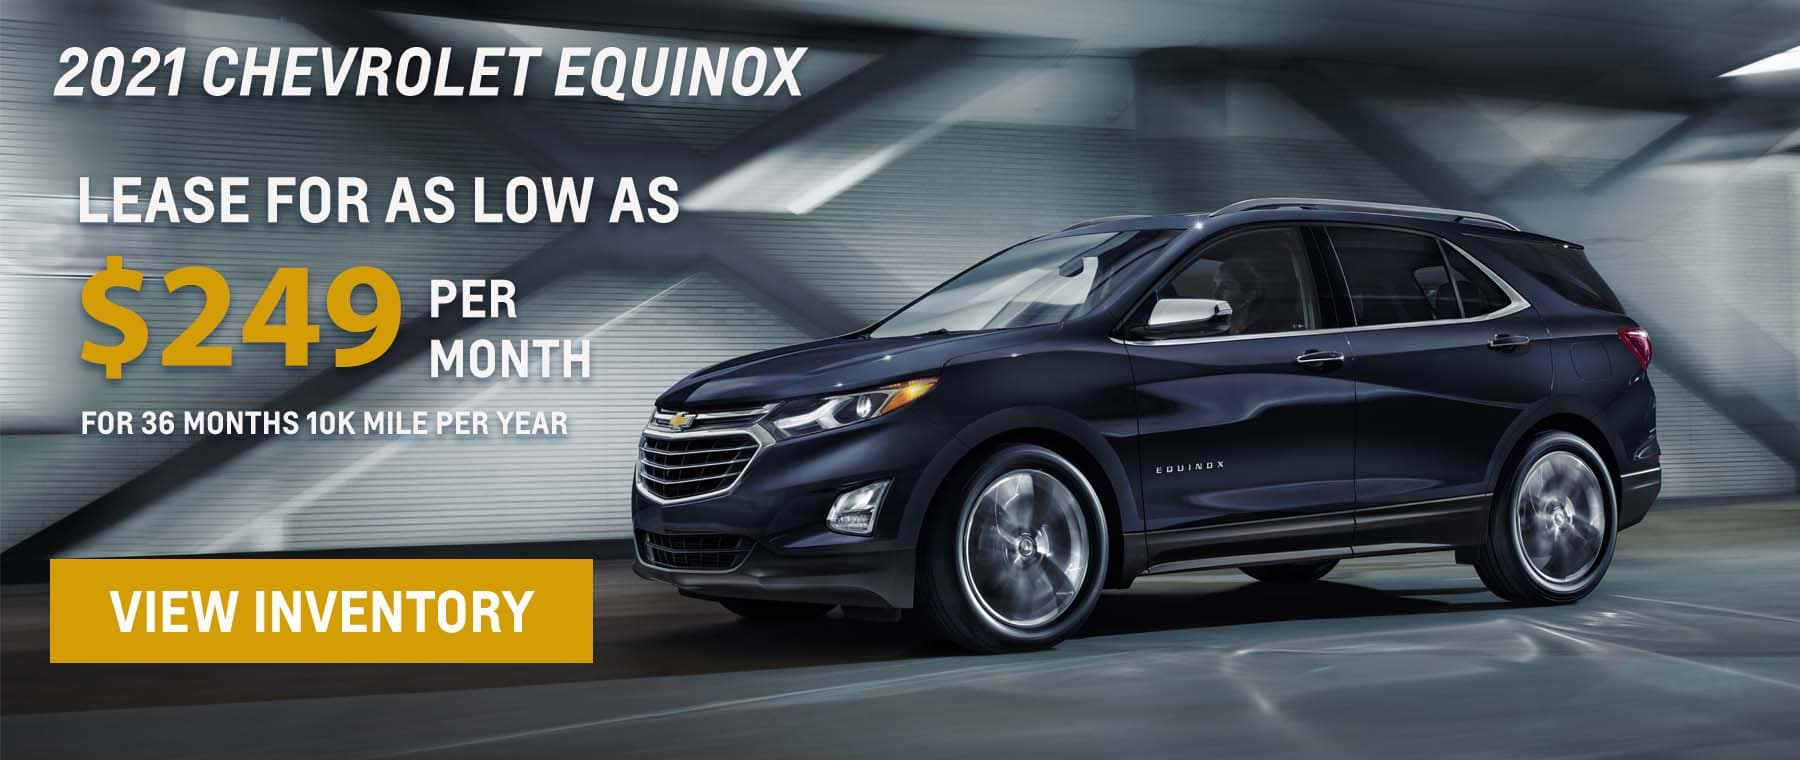 Equinox DI Lease Slide